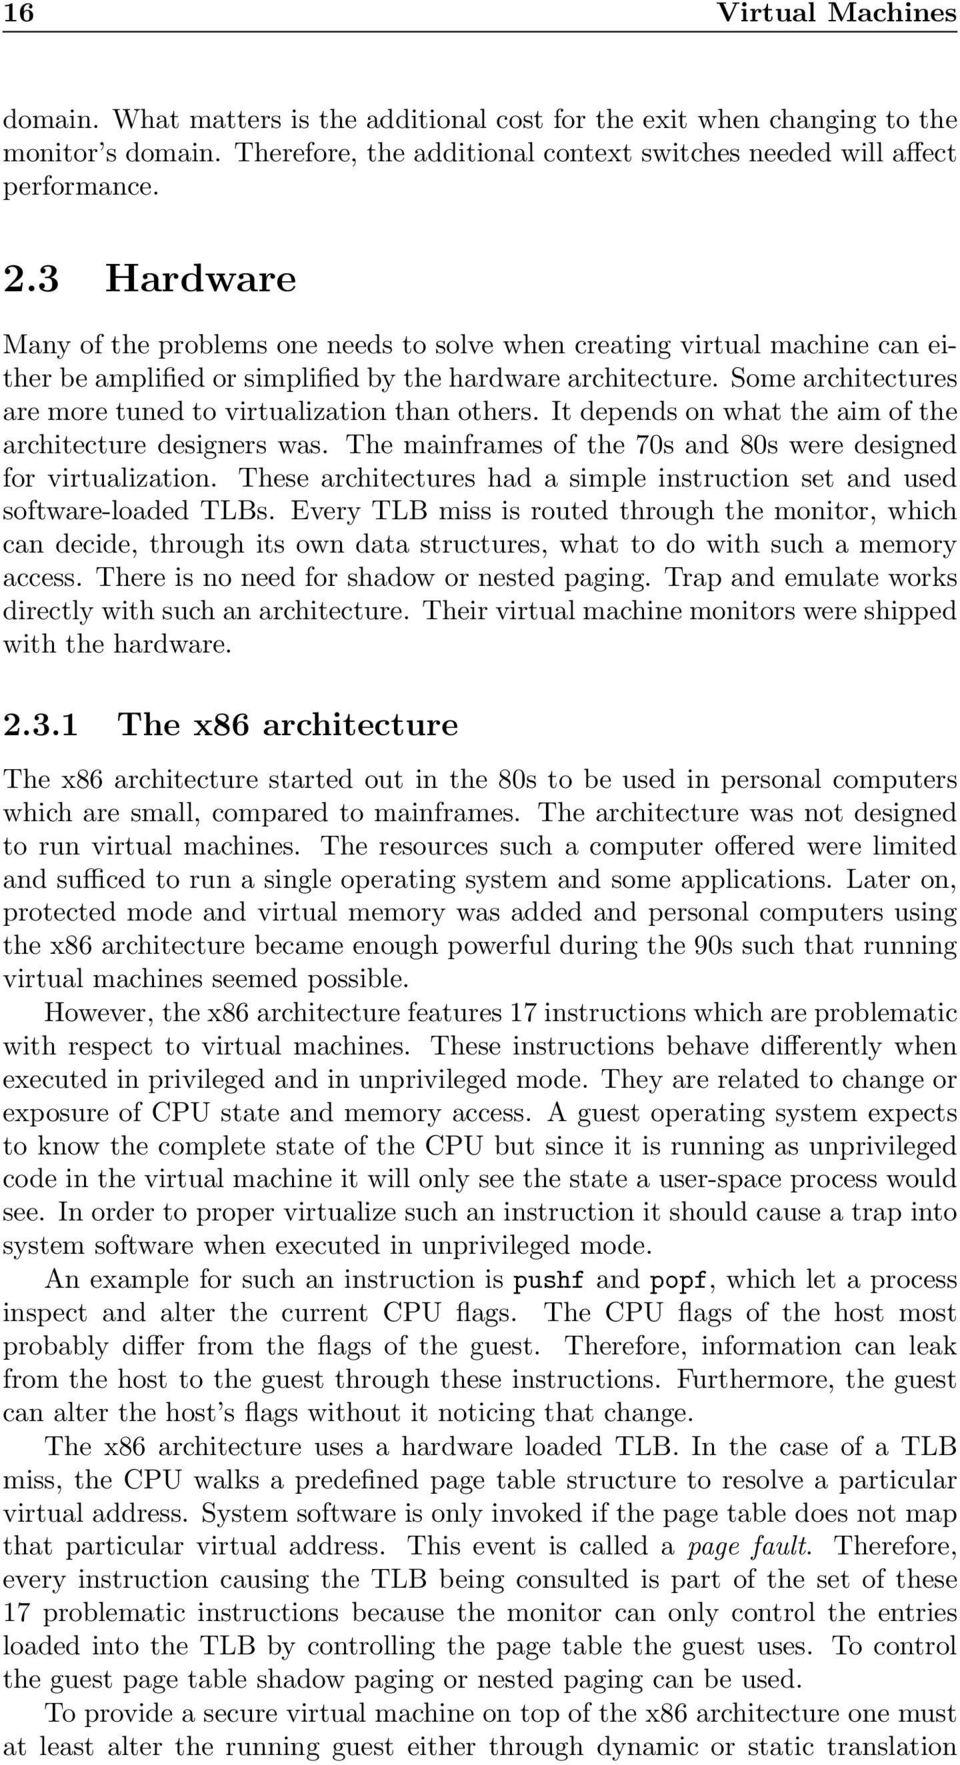 Some architectures are more tuned to virtualization than others. It depends on what the aim of the architecture designers was. The mainframes of the 70s and 80s were designed for virtualization.